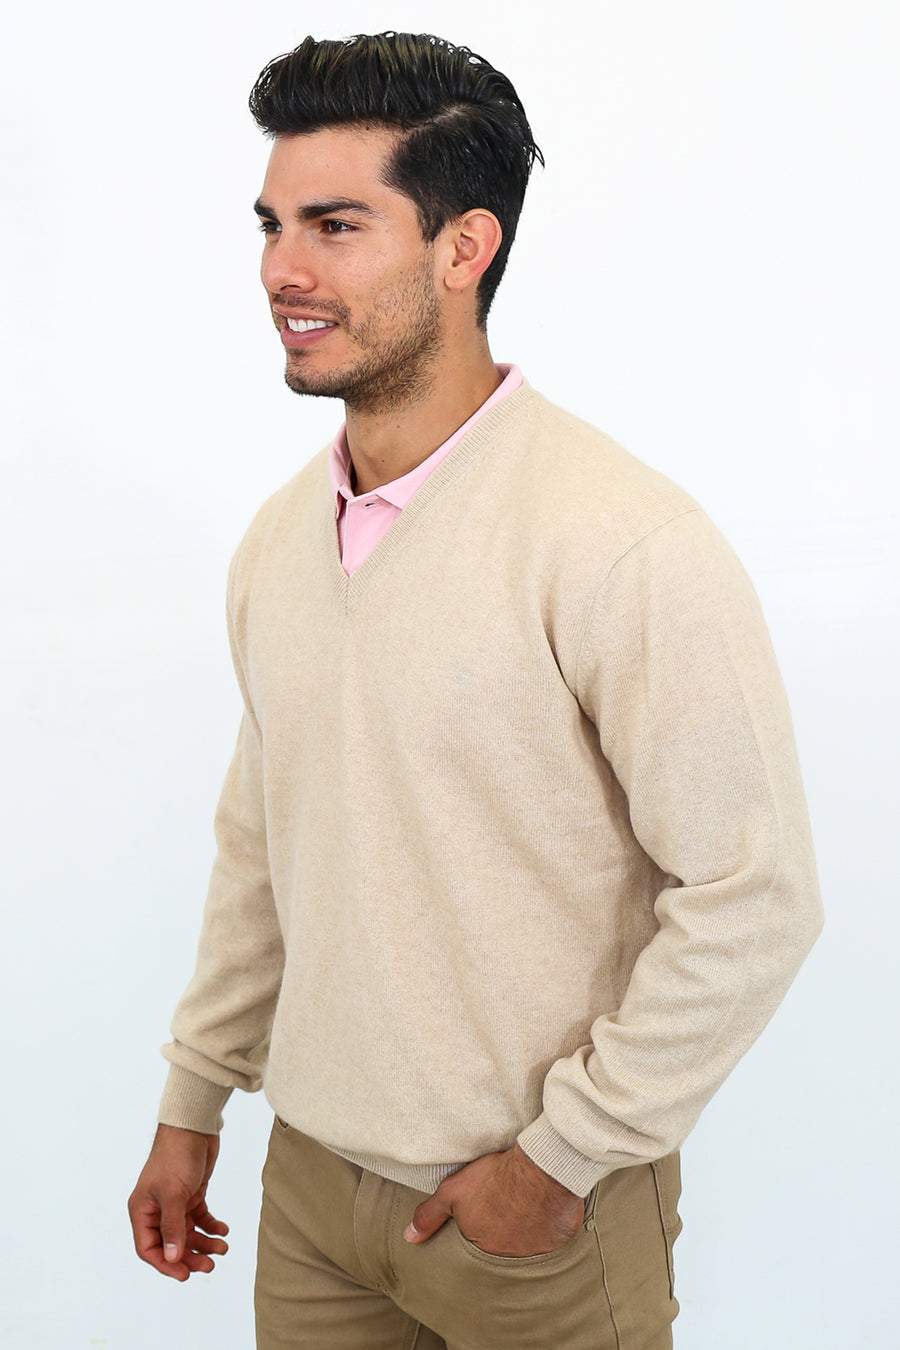 pine cashmere mens classic 100% pure organic cashmere v neck sweater in tan